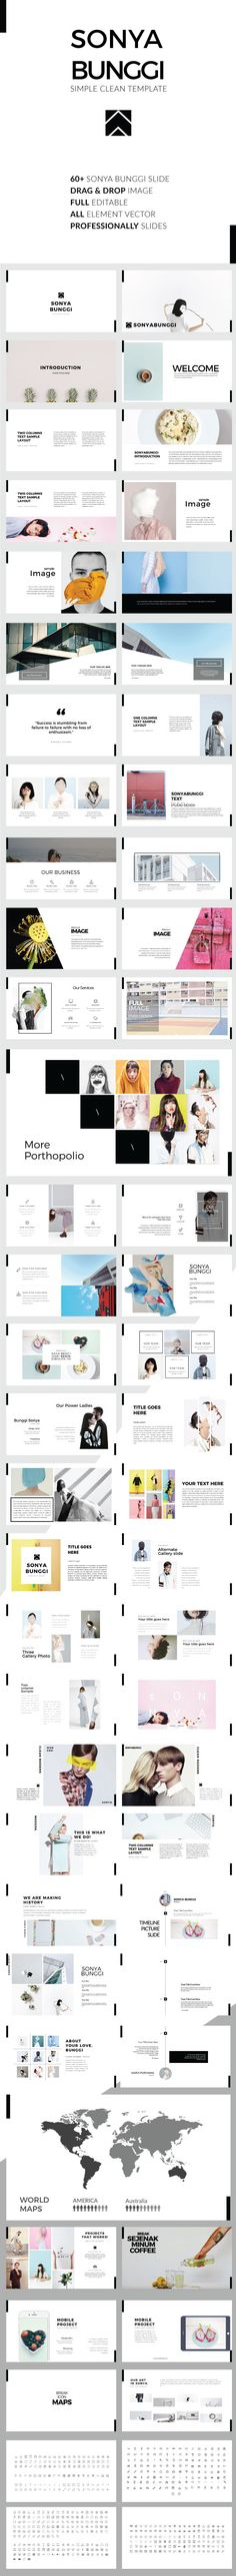 Sonya Bunggi - Simple Clean Keynote Template - #Business #Keynote #Templates Download here: https://graphicriver.net/item/sonya-bunggi-simple-clean-keynote-template/19531439?ref=alena994